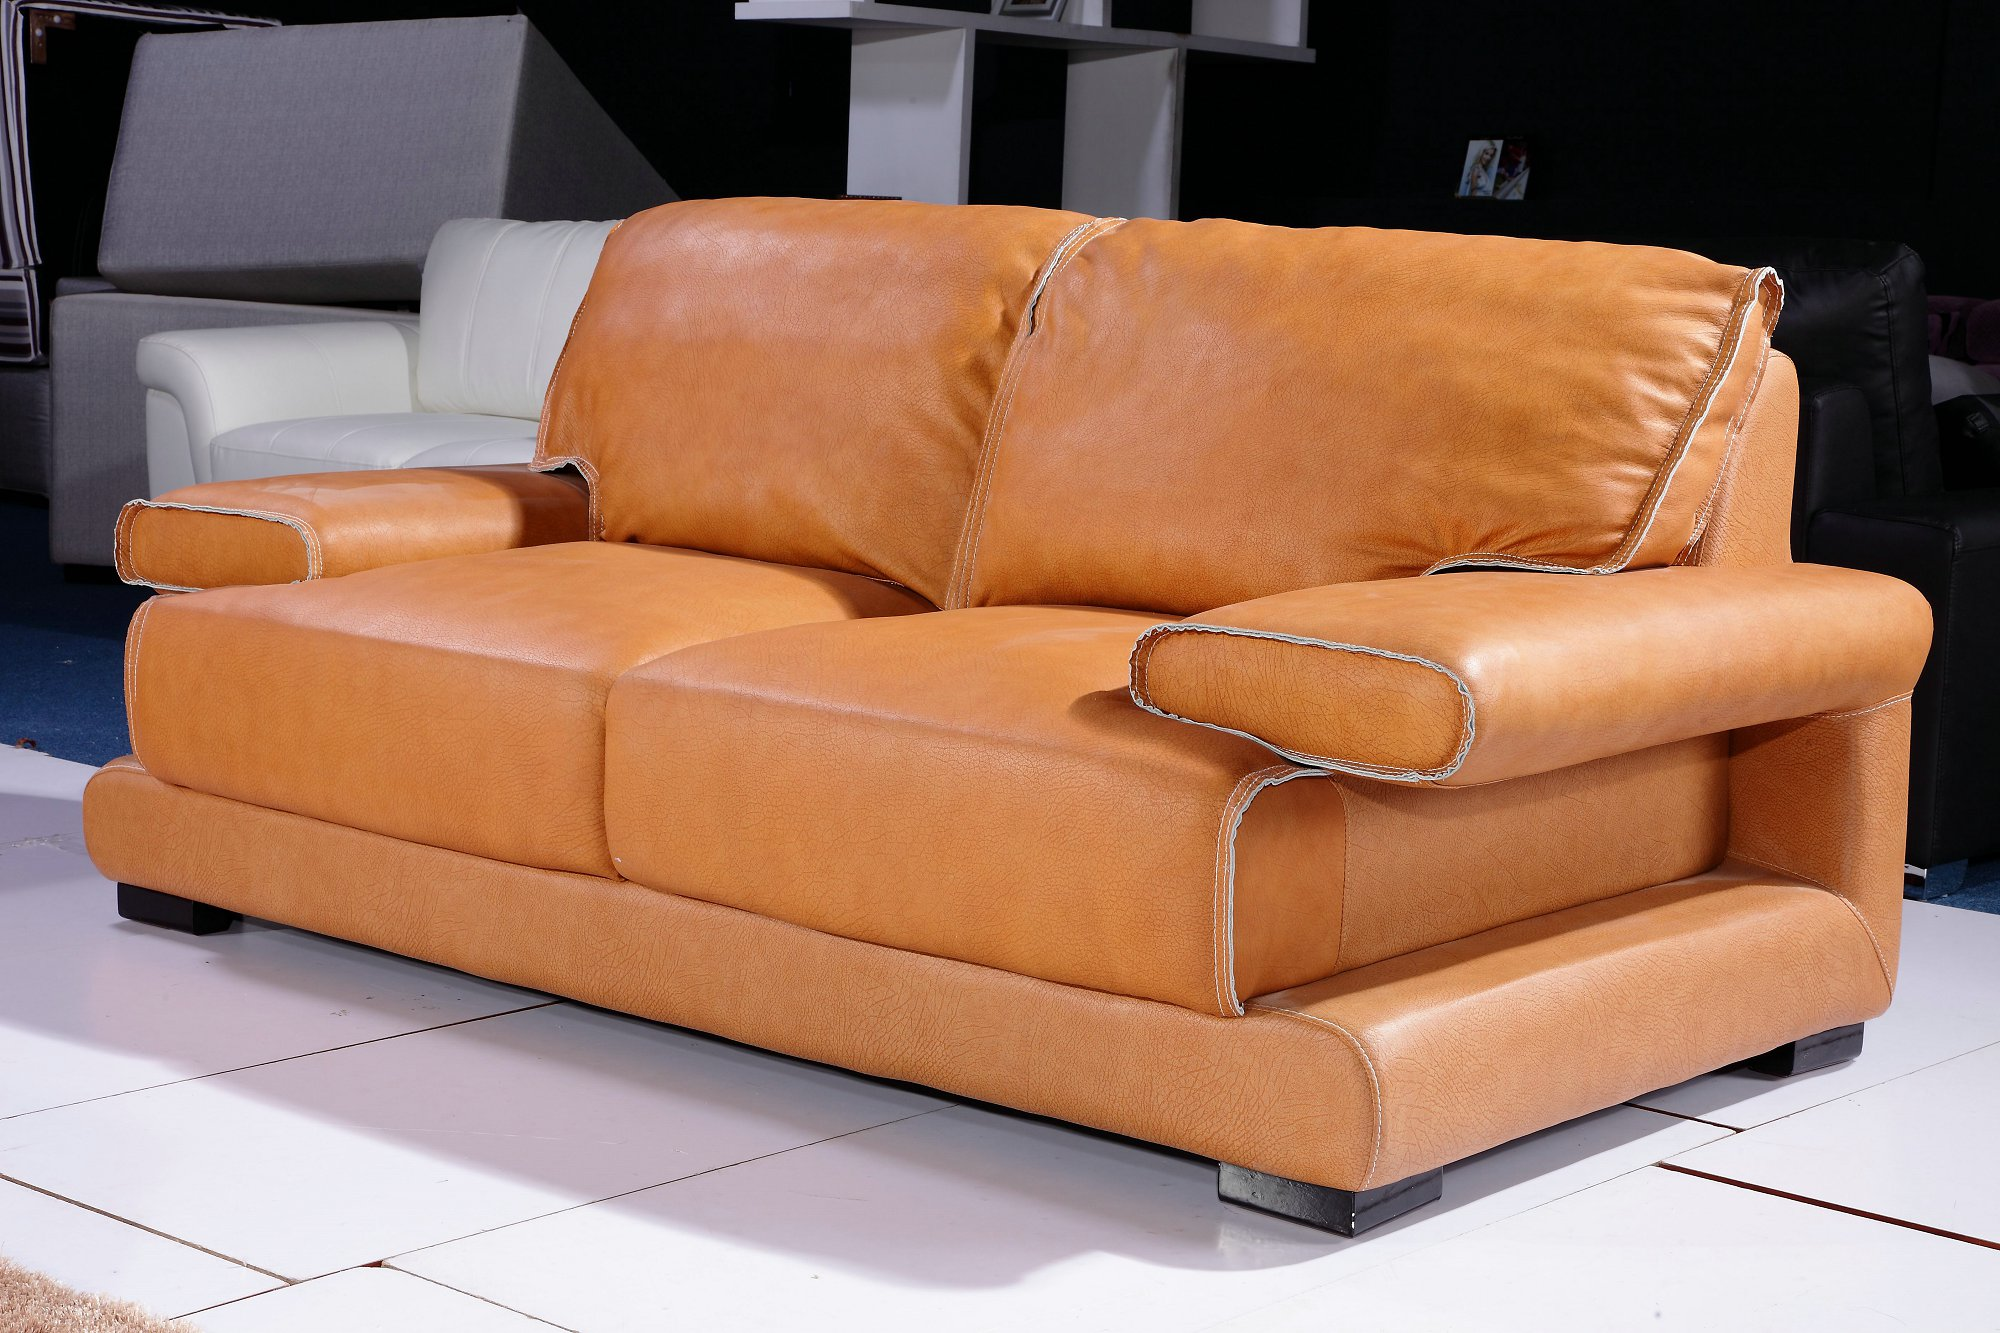 Orange Leather Couch Furniture